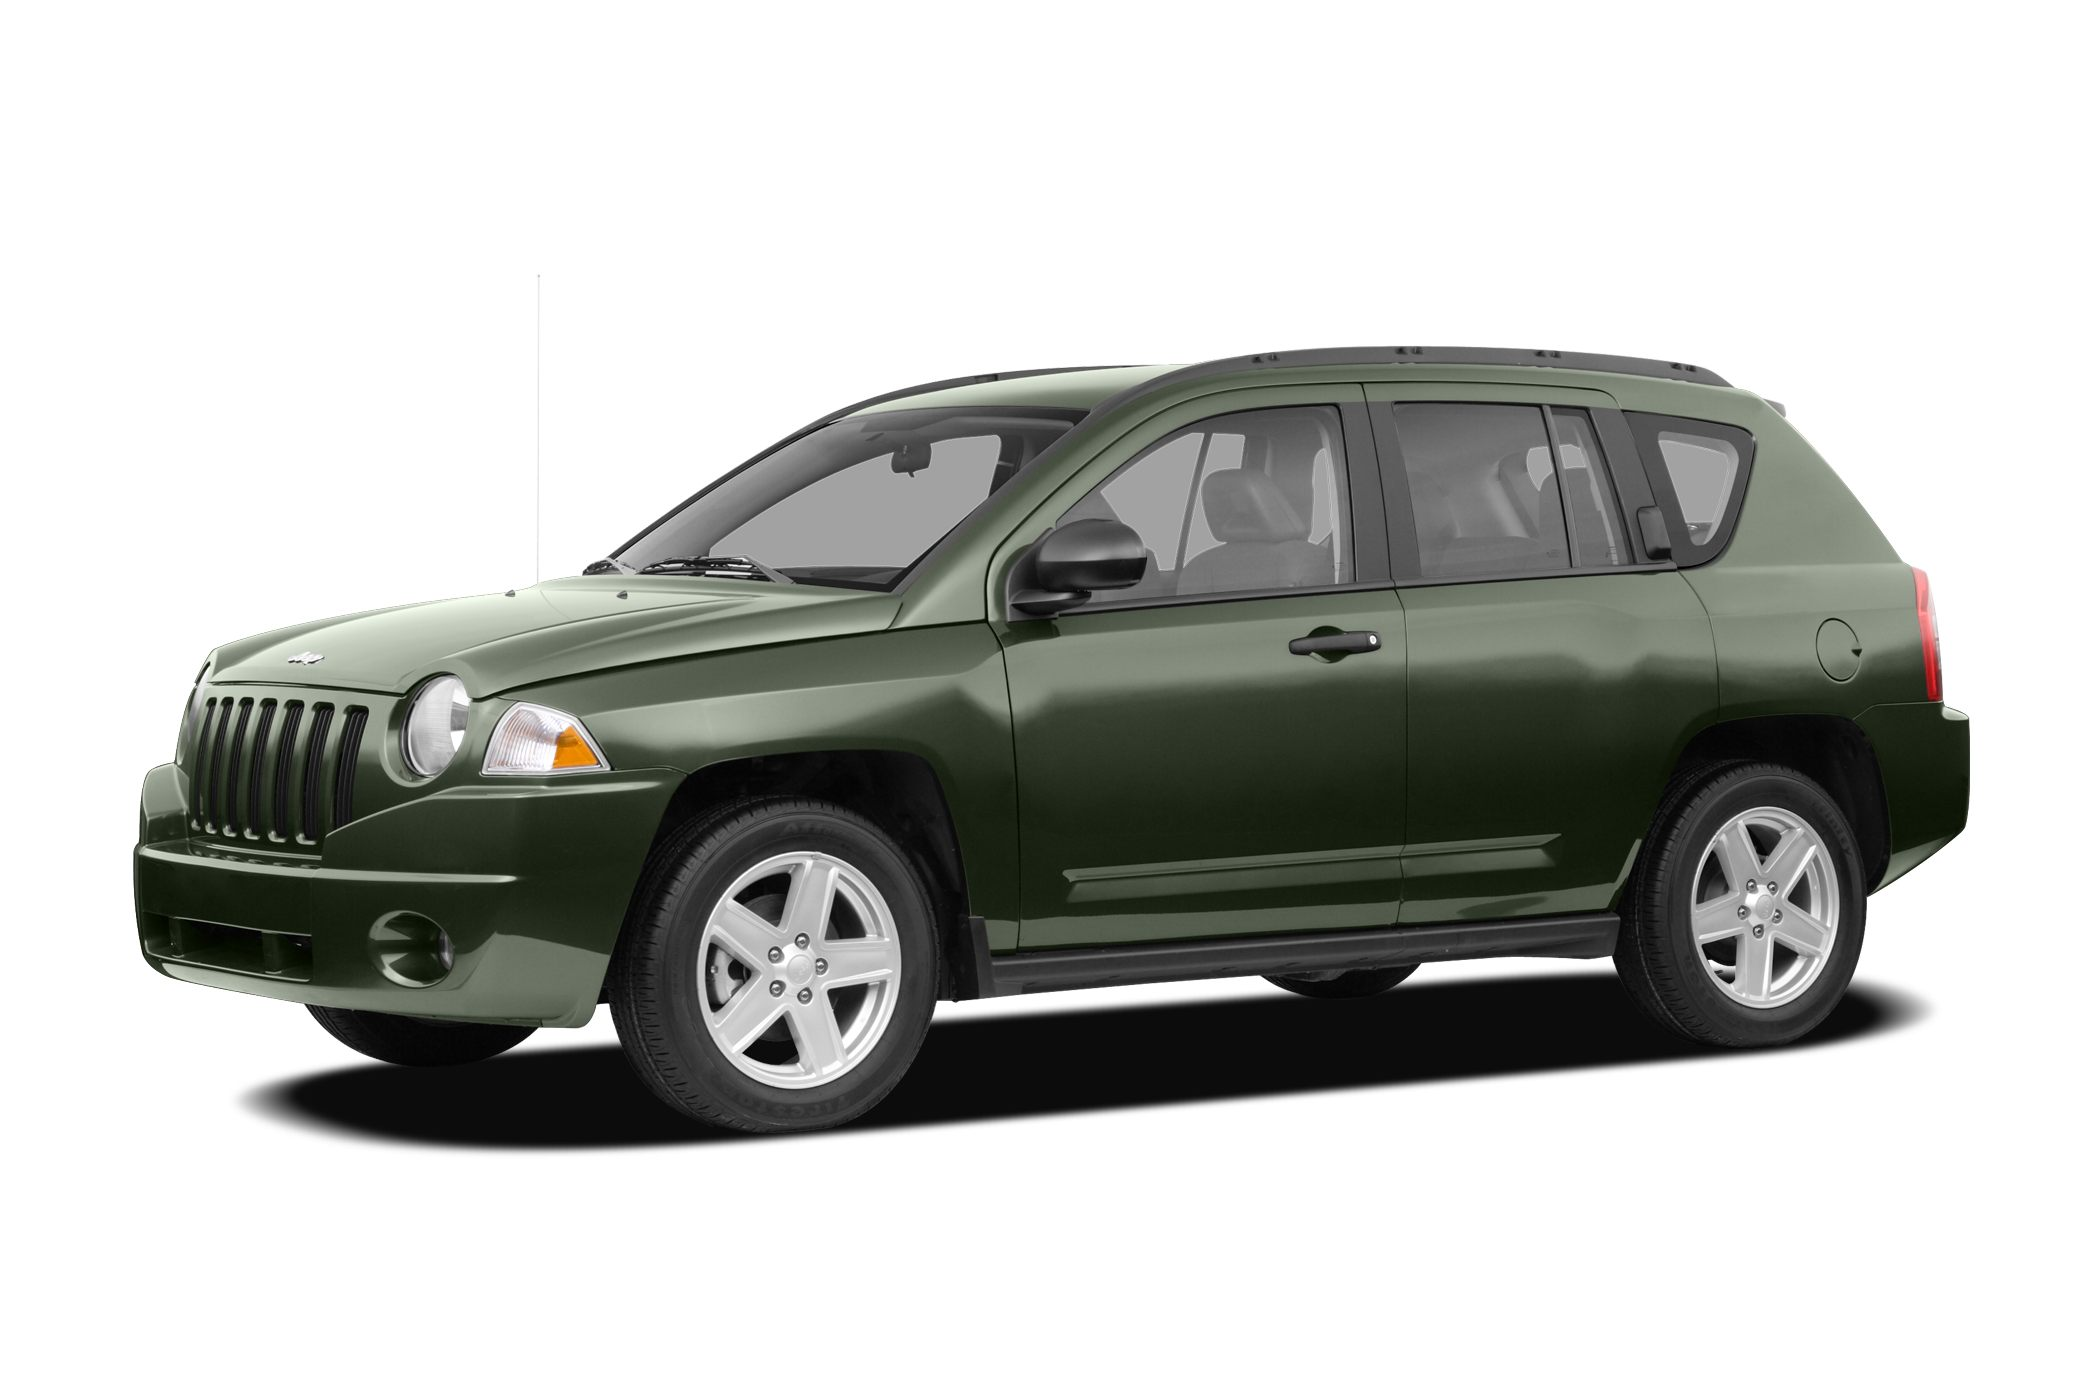 2007 Jeep Compass Owner Reviews And Ratings